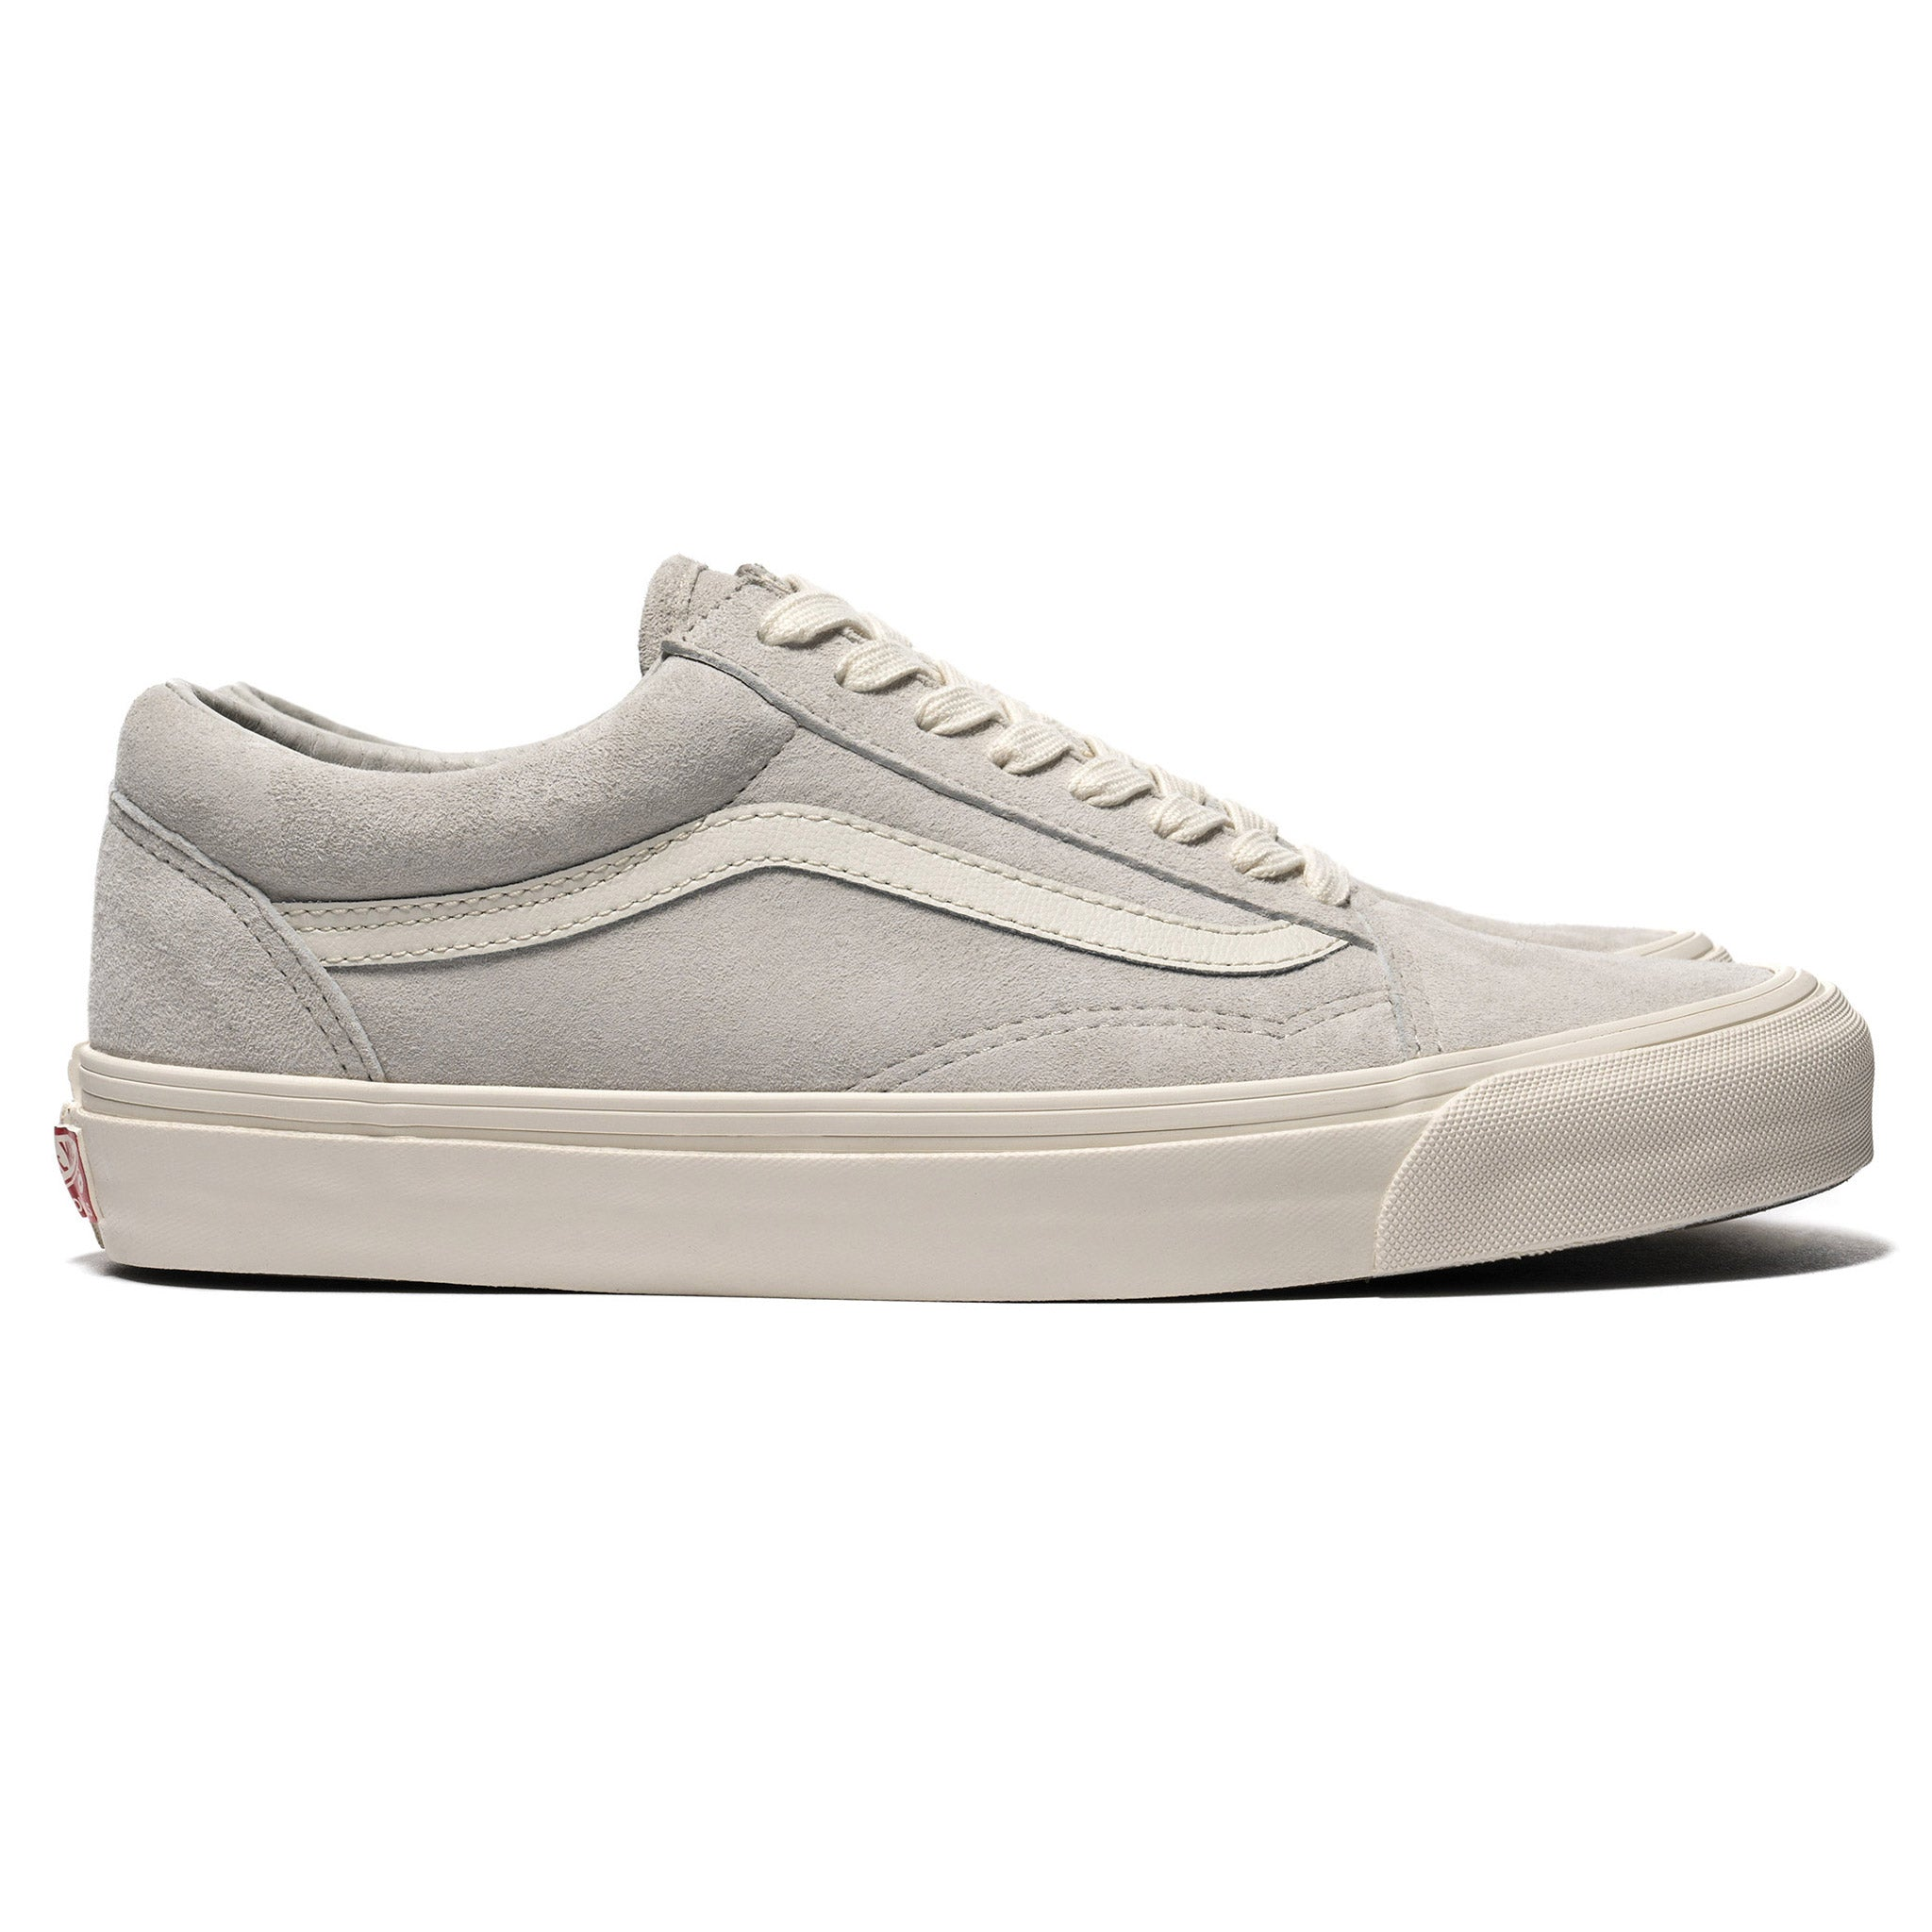 7d93c8ced6fe OG Old Skool LX Marshmallow – HAVEN